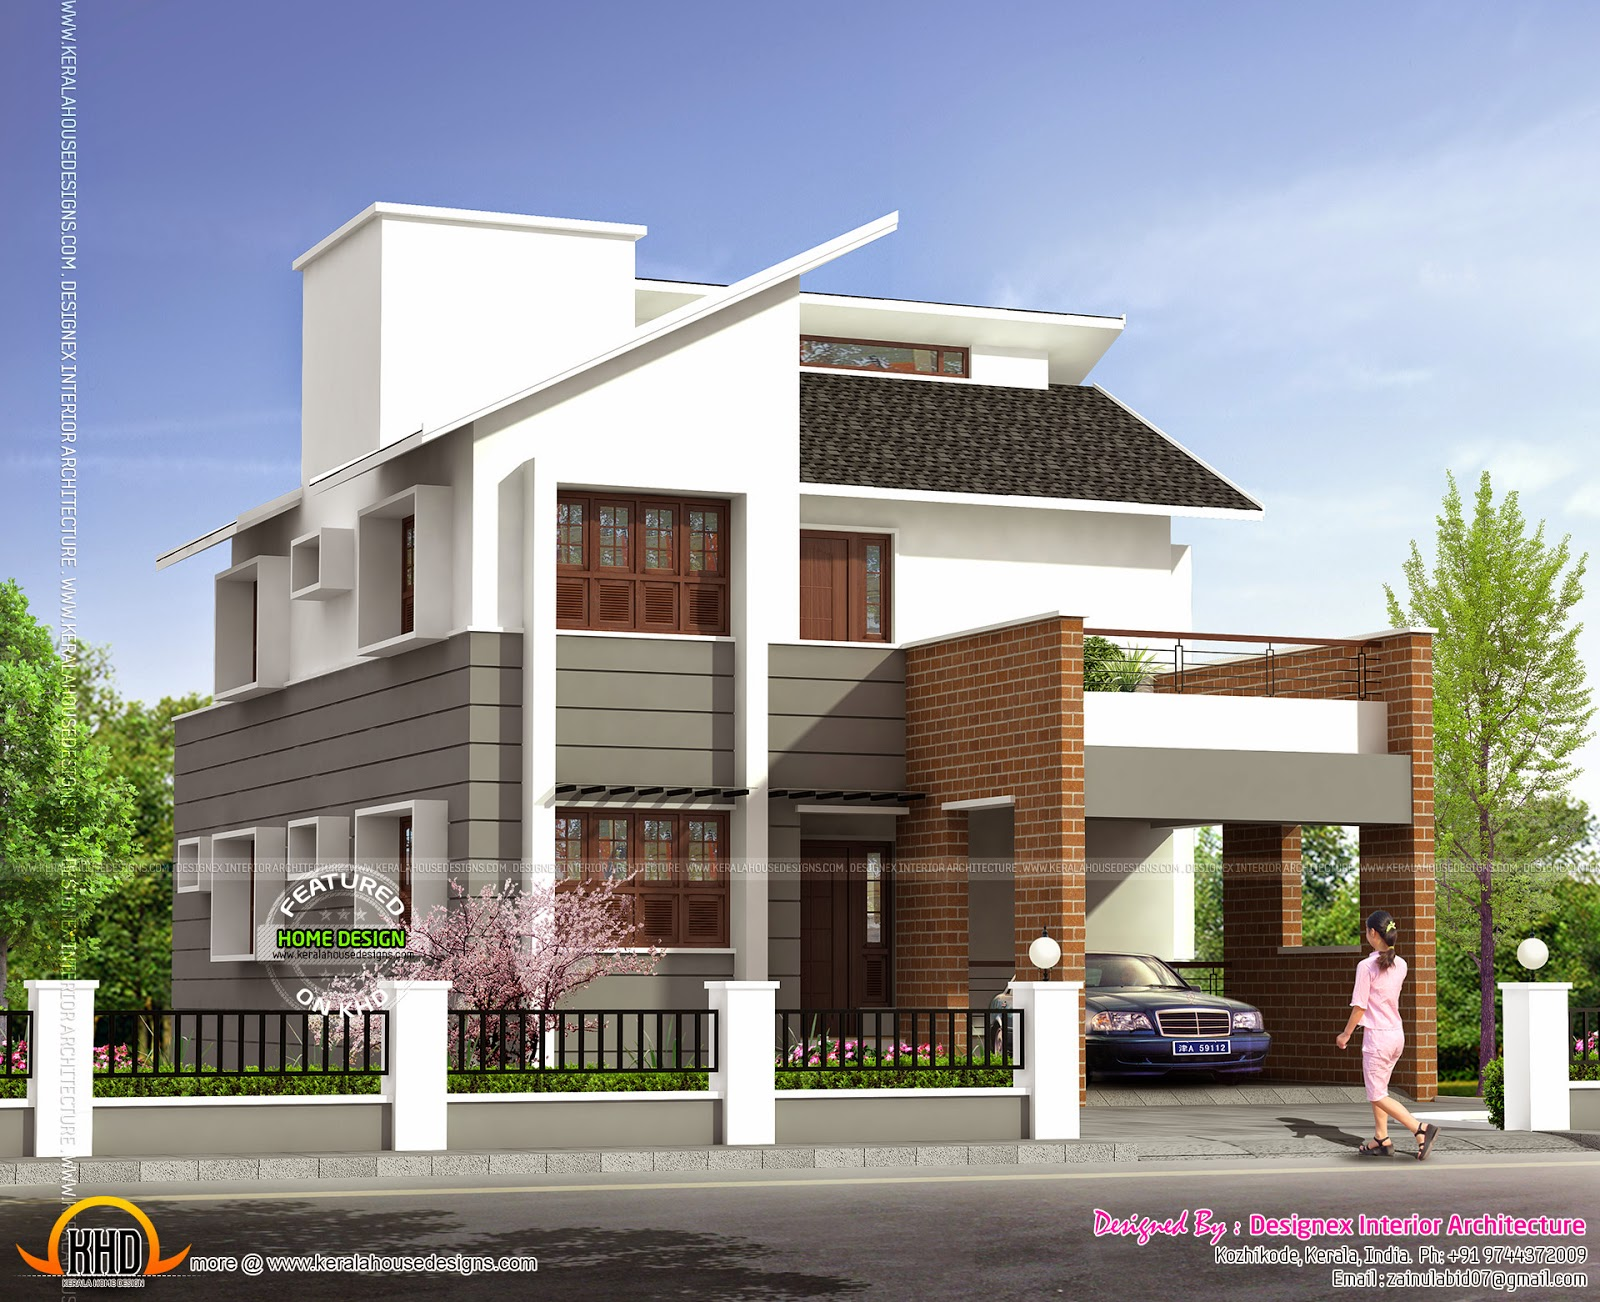 1995 Square Feet Modern House Exterior Kerala Home: design the outside of your house online